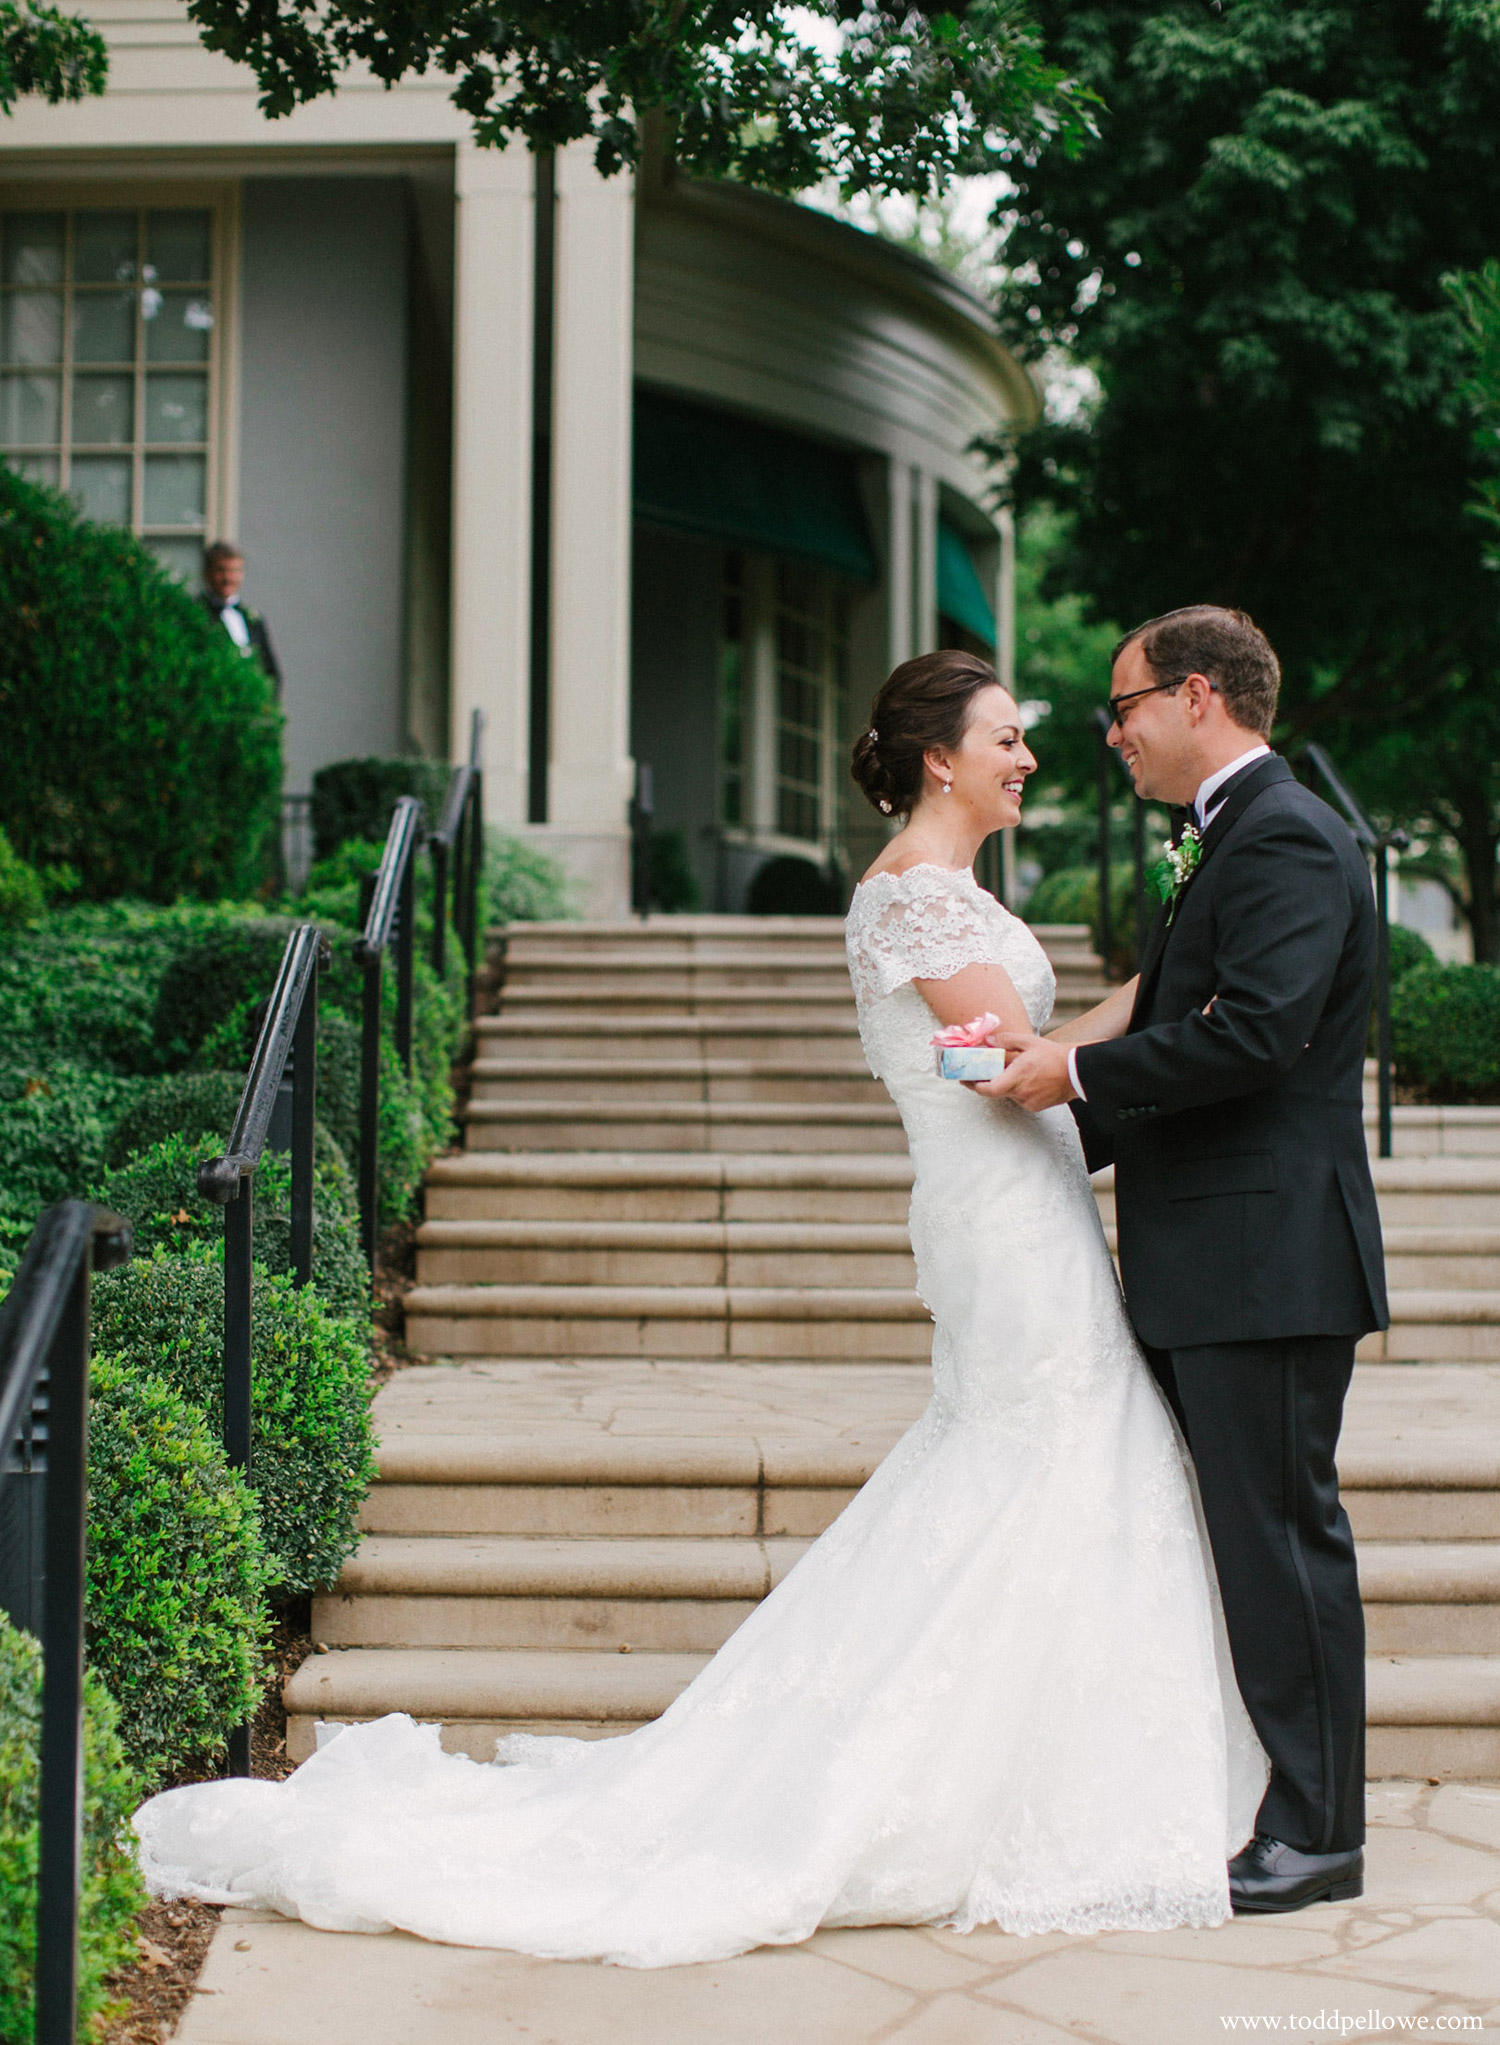 37-louisville-country-club-wedding-107.jpg